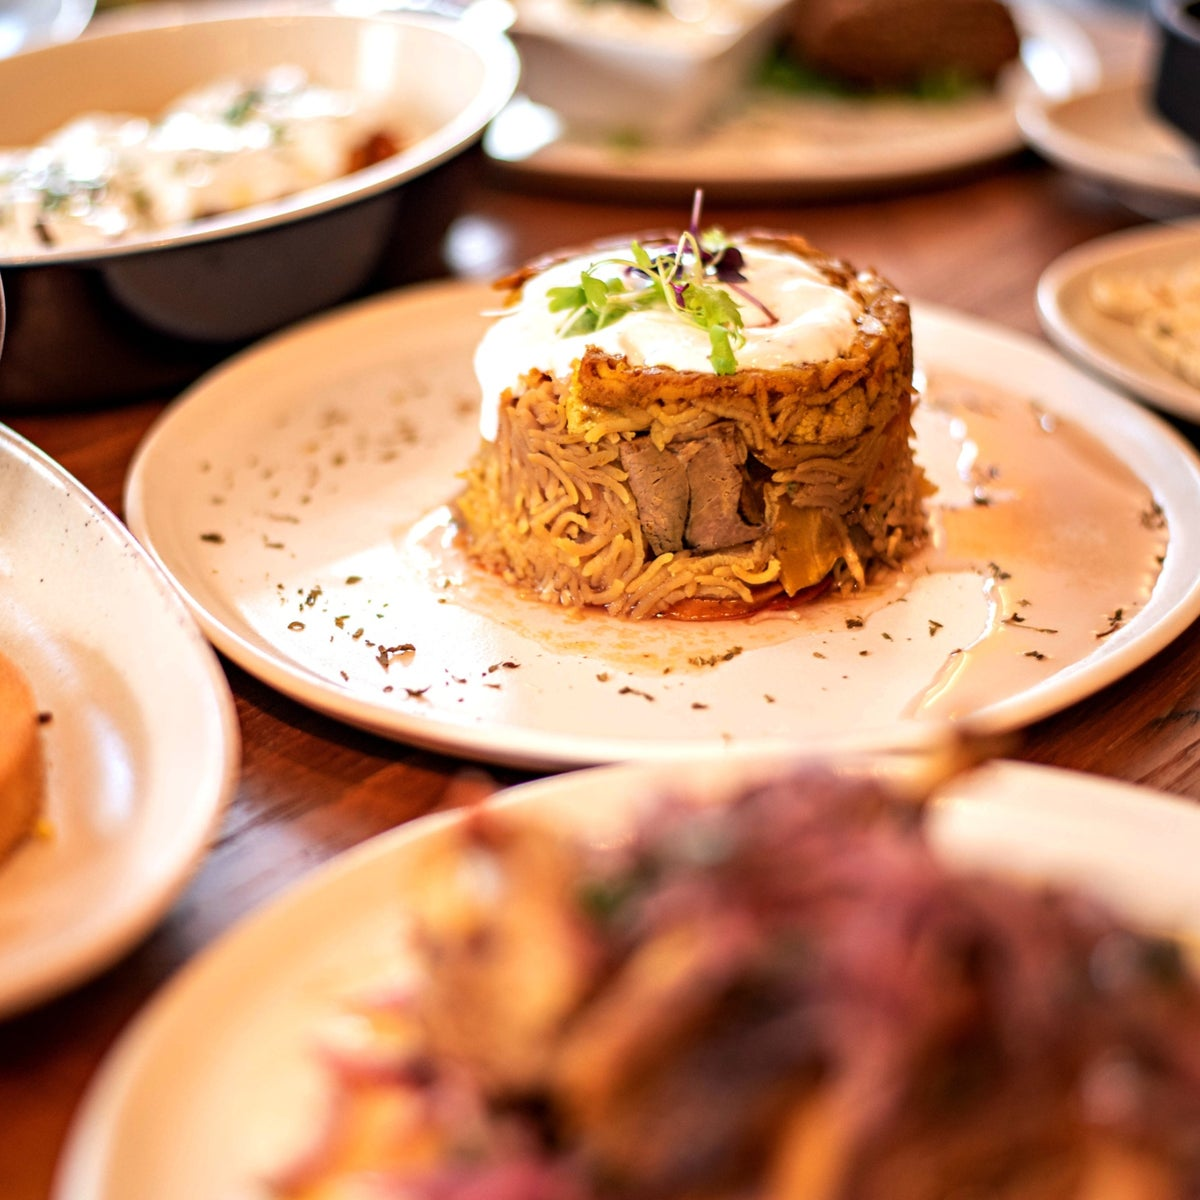 One of the popular dishes is the makloubeh, which features basmati rice, lamb stew, eggplant, cauliflower, carrots, tomatoes and spices.